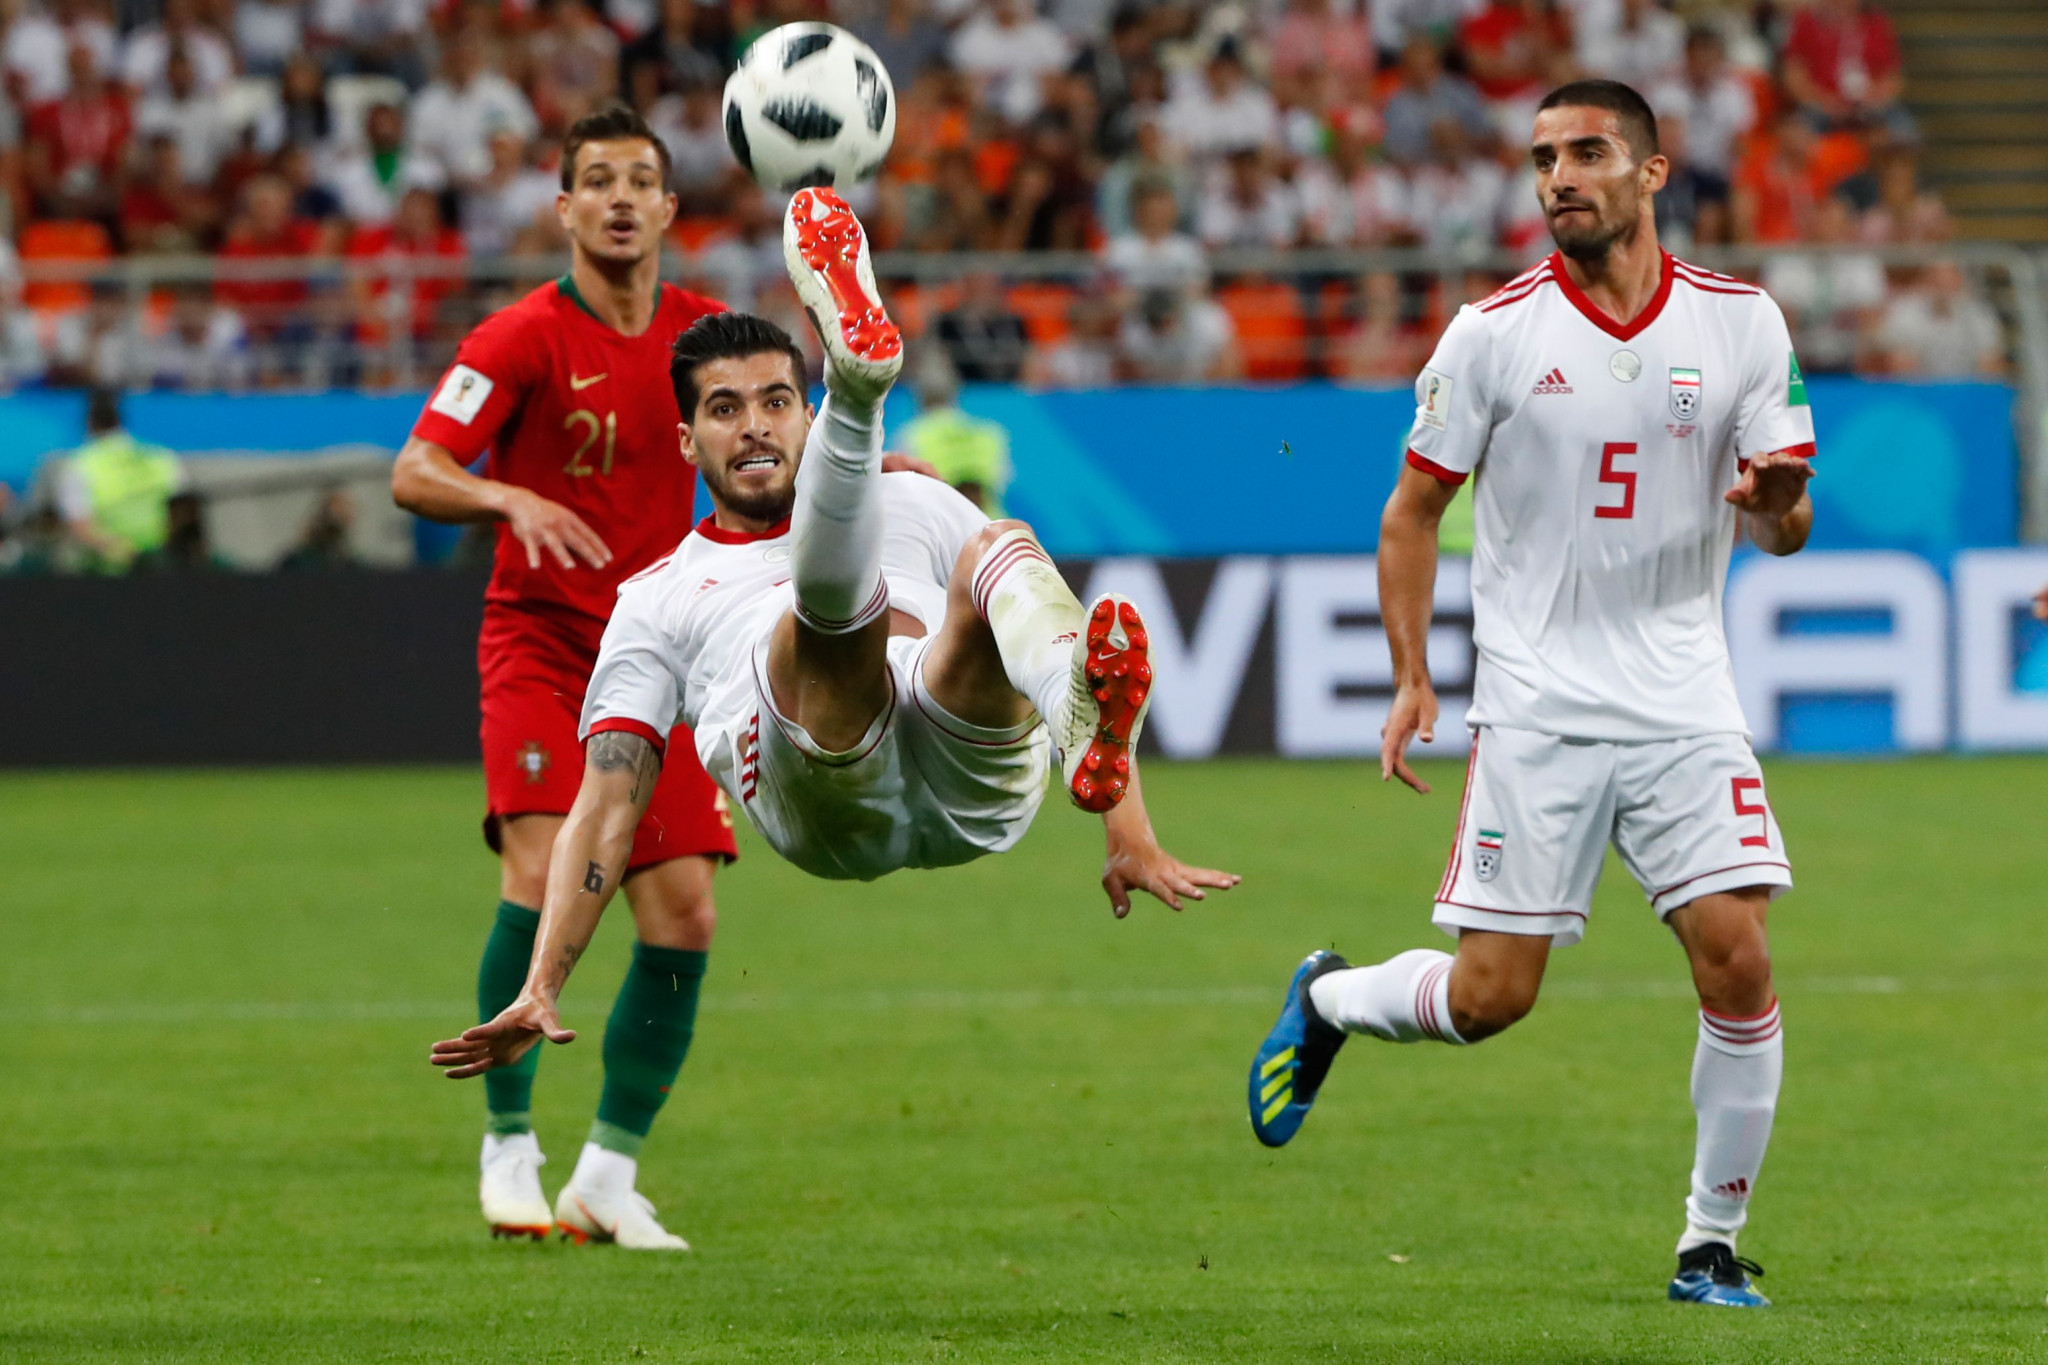 Saeid Ezatolahi makes a clearance during the FIFA World Cup match between Iran and Portugal ©Getty Images